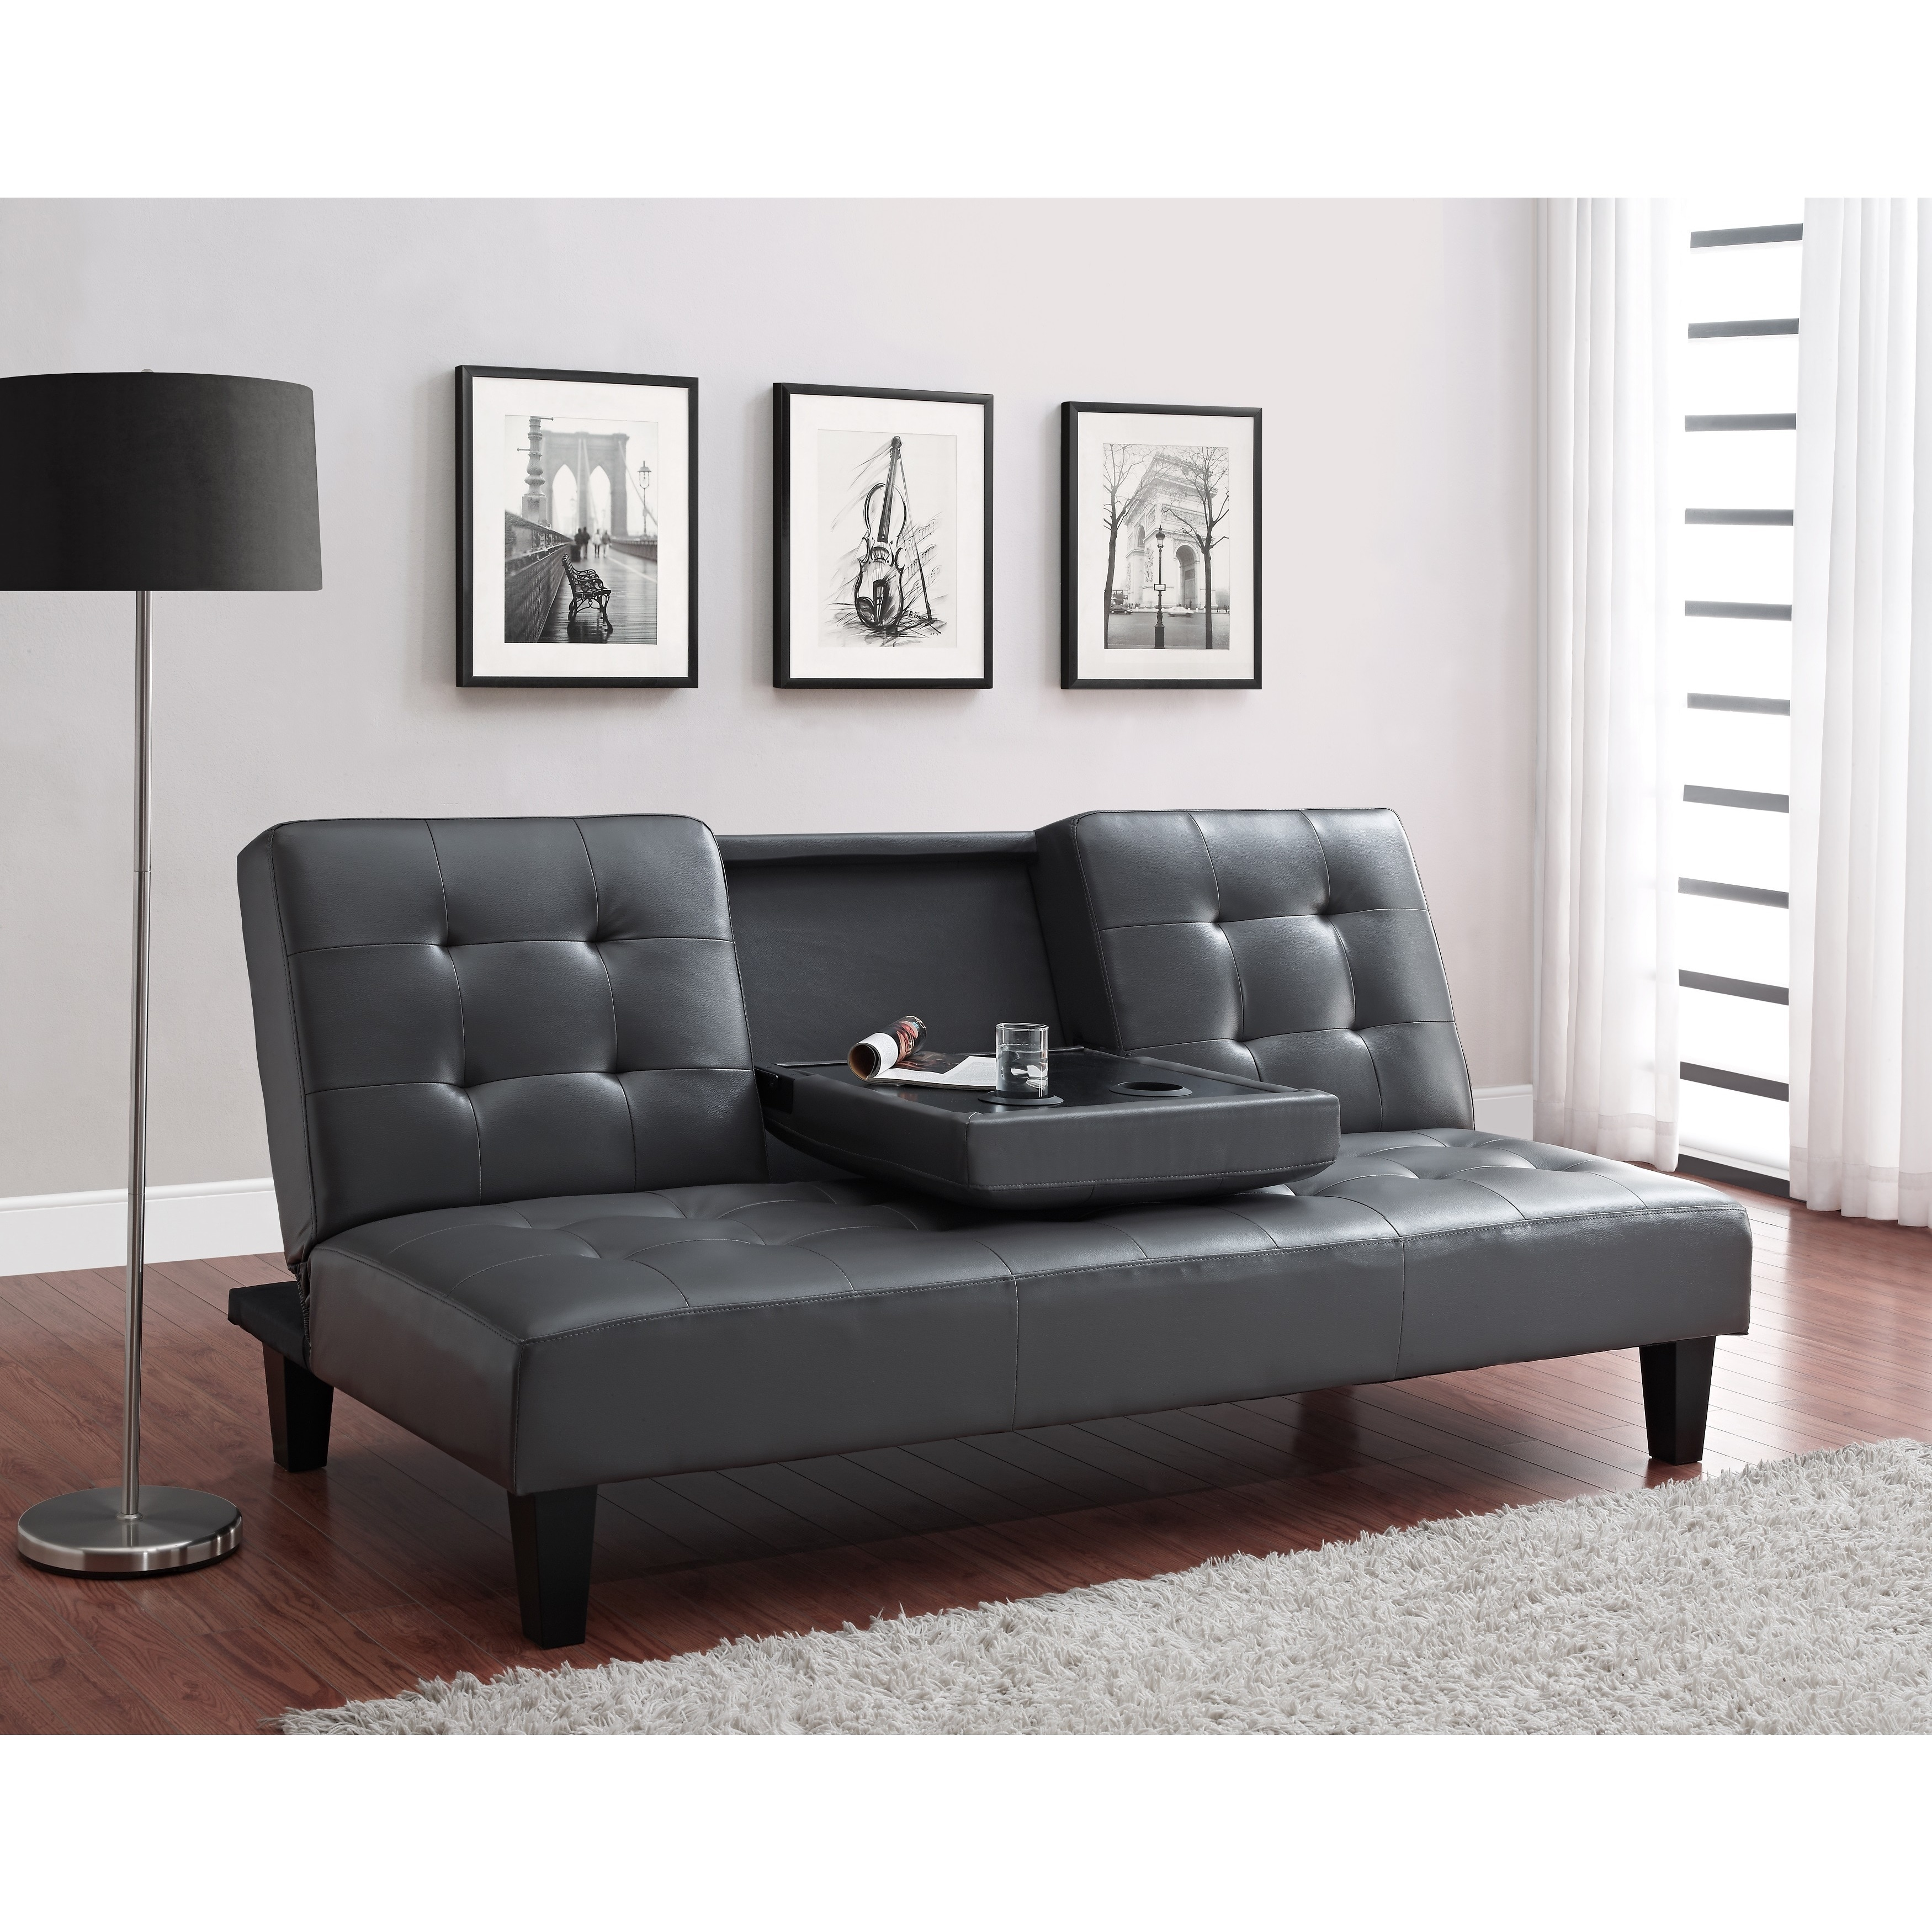 Avenue Greene Julia Cup Holder Convertible Futon Sofa Bed Free Shipping Today 9119823